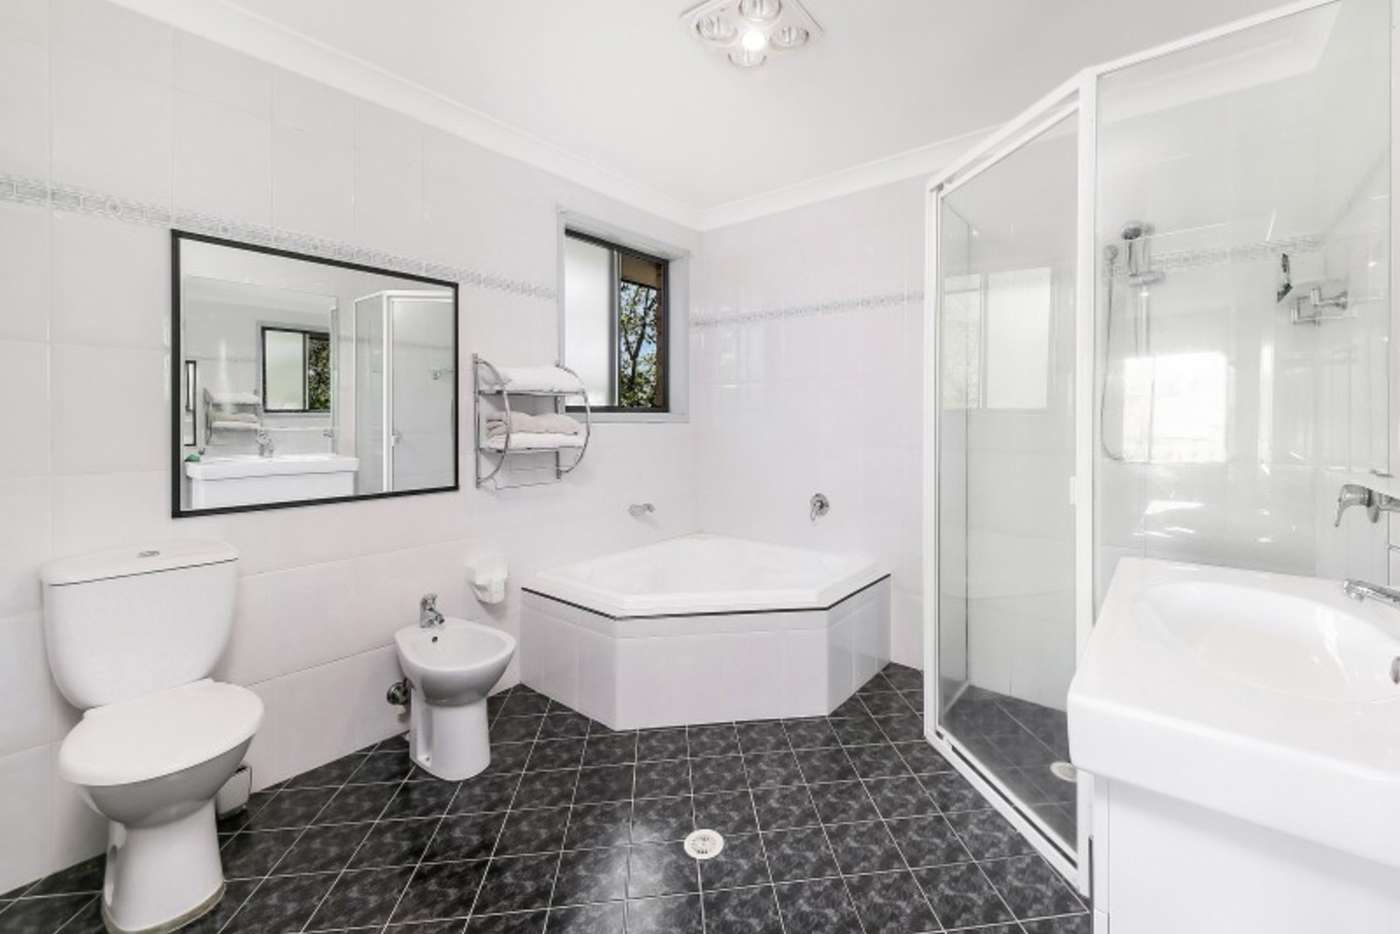 Fifth view of Homely house listing, 17 Matthew Street, Merrylands NSW 2160